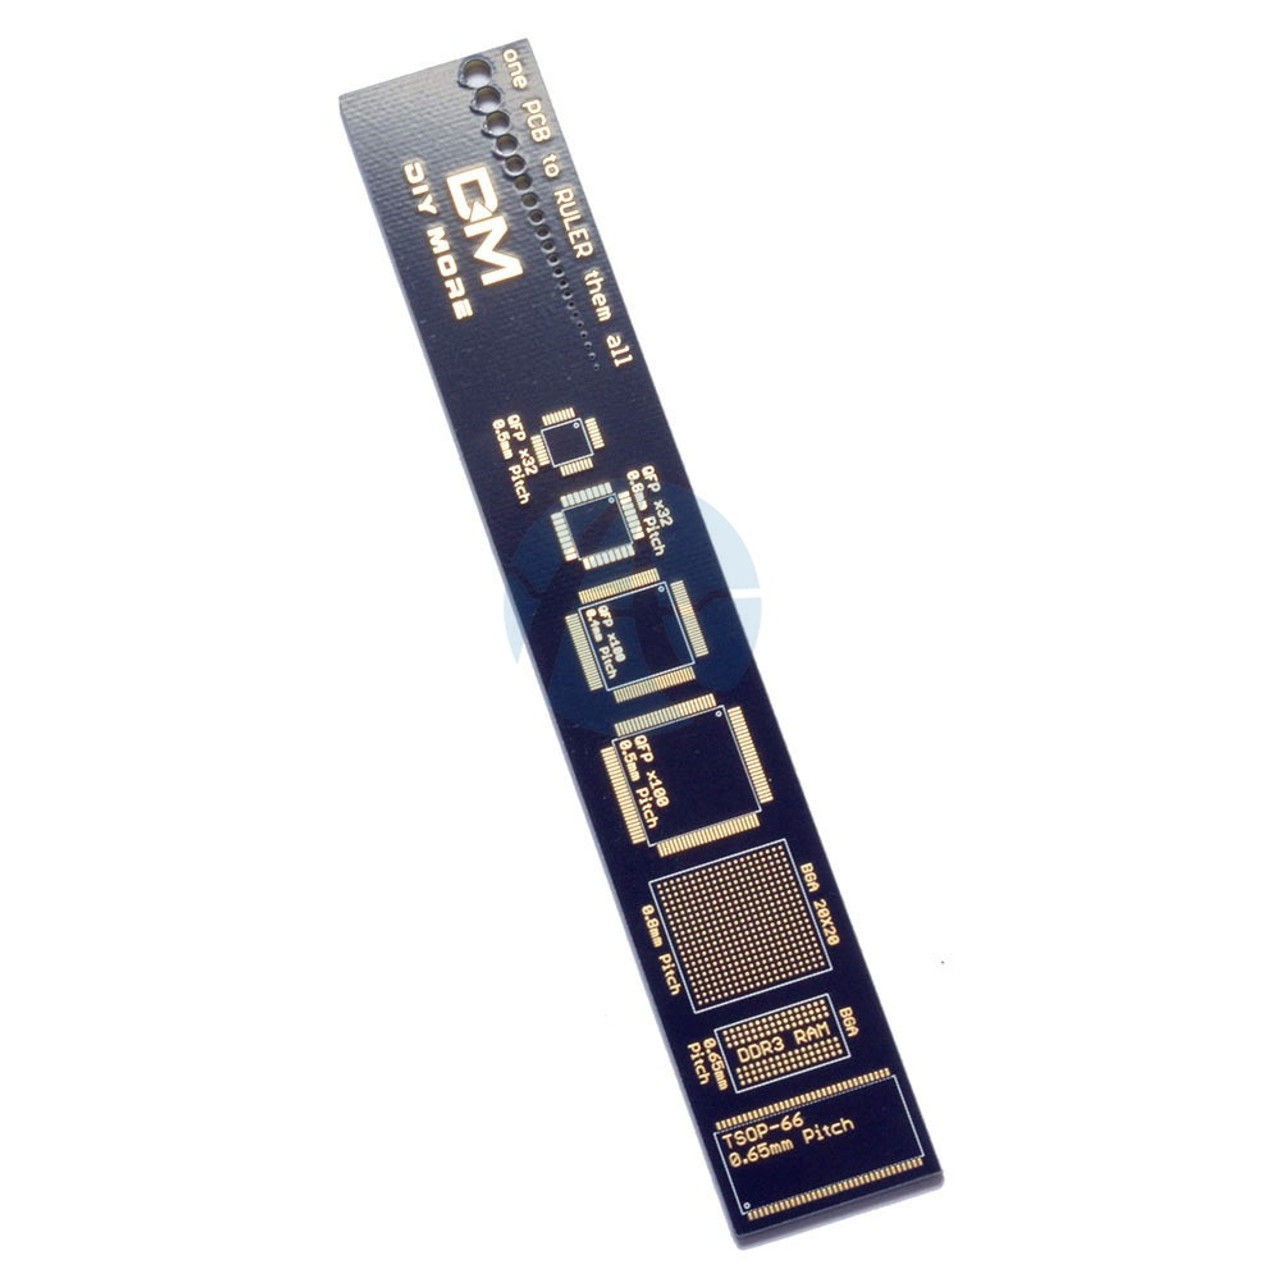 Pcb Ruler For Electronic Engineers Geeks Makers Arduino Fans Antietching Circuit Board Ink Marker Pen Diy Reference Packaging